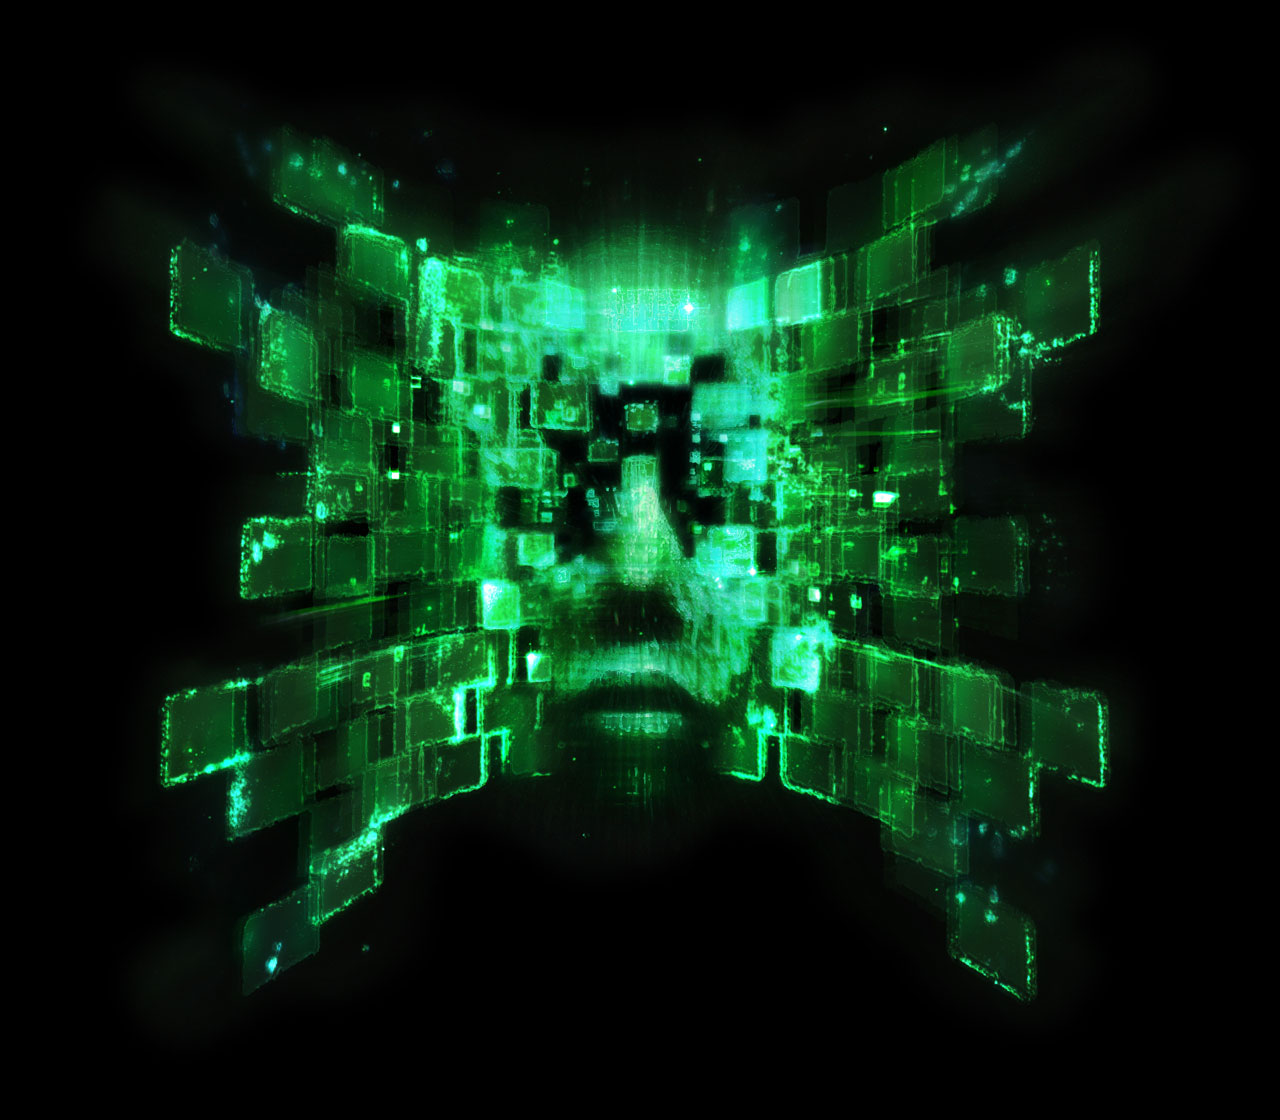 Warren Spector To Lead The Team Developing System Shock 3 VG247